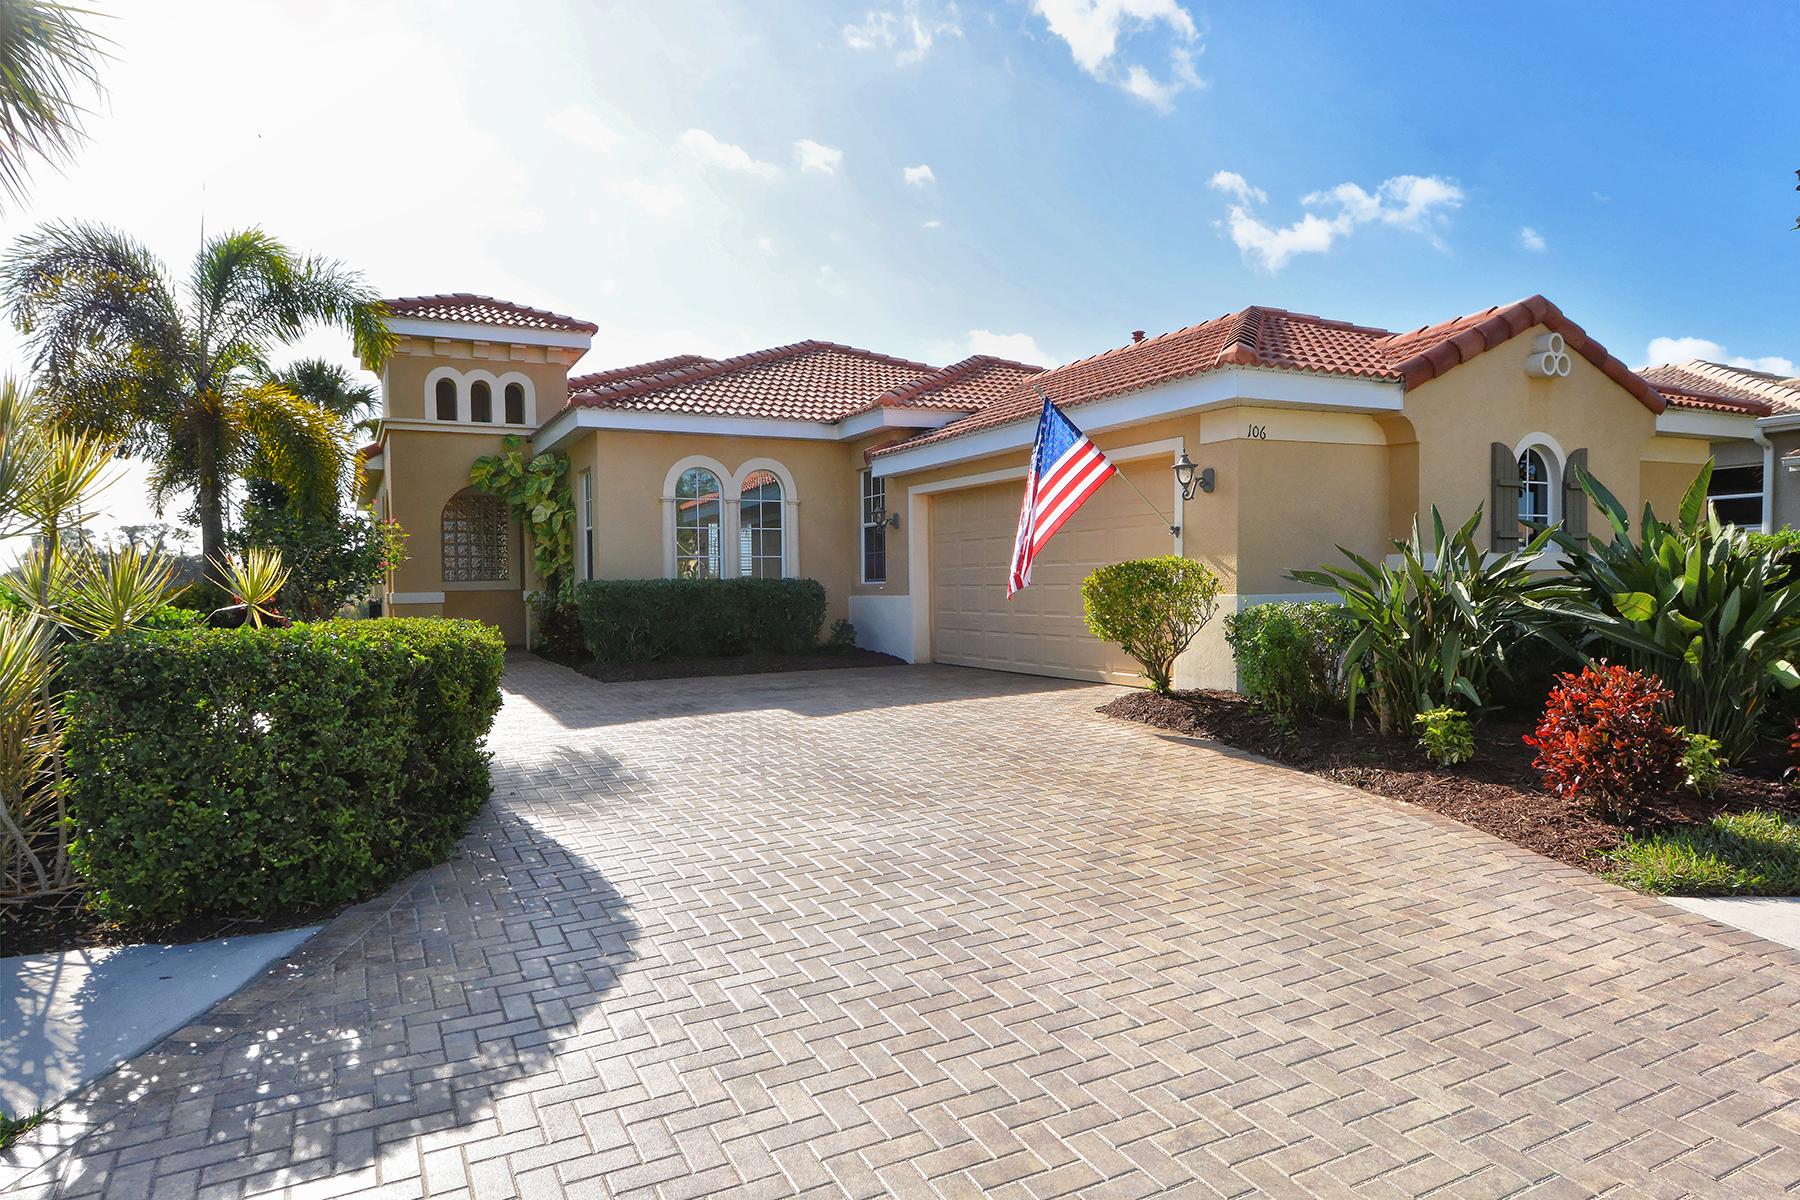 Casa Unifamiliar por un Venta en VENETIAN GOLF & RIVER CLUB 106 Cipriani Ct North Venice, Florida, 34275 Estados Unidos